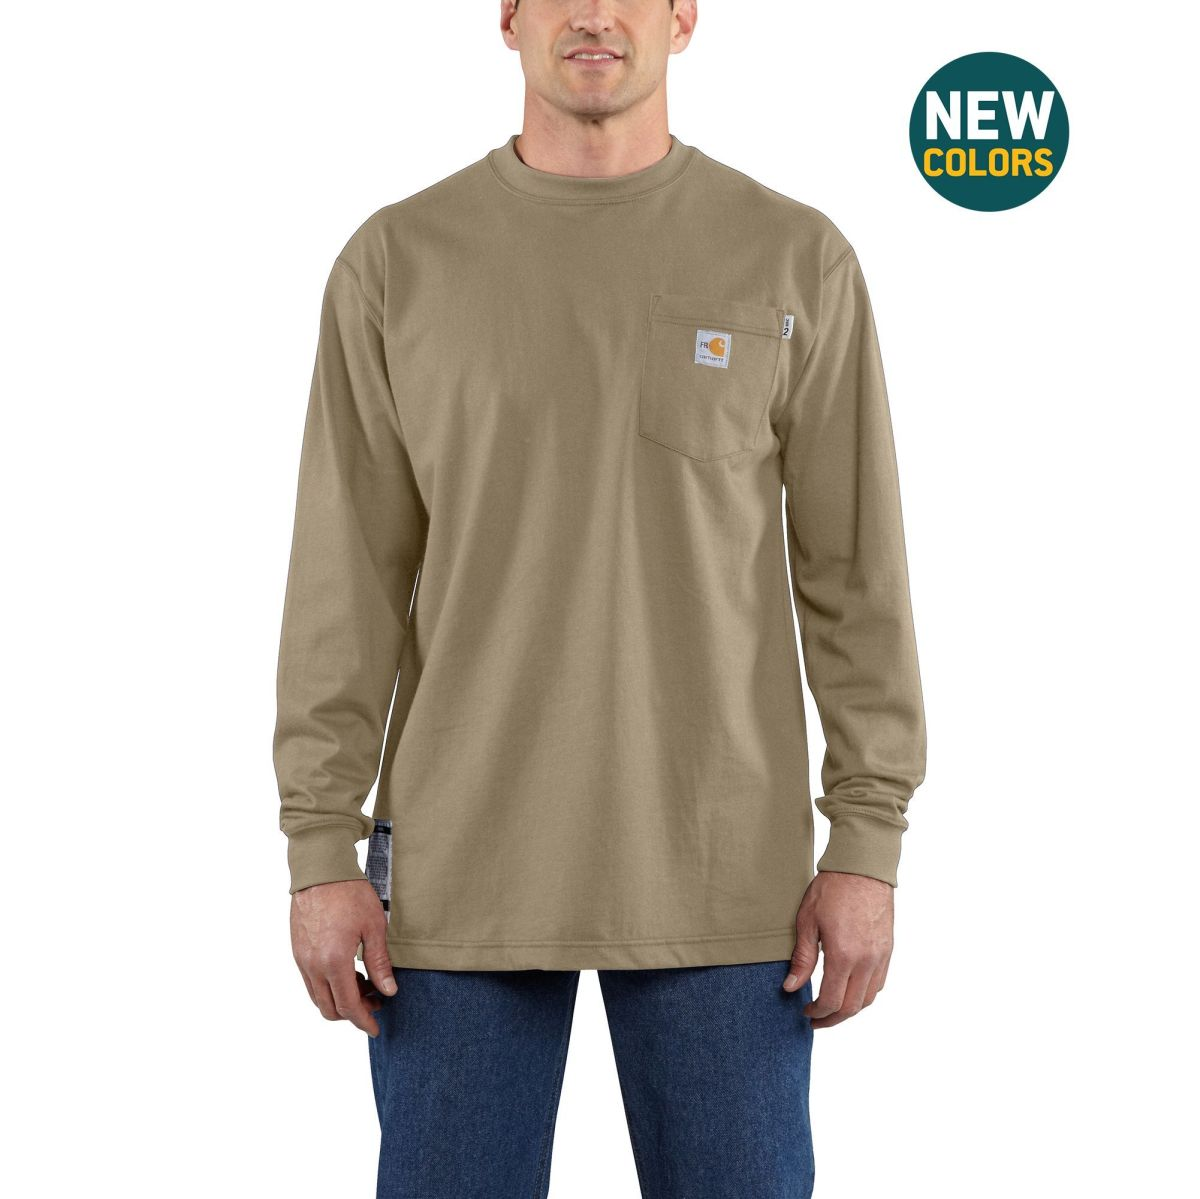 Carhartt FR Force Cotton Long Sleeve T Shirt-Carhartt